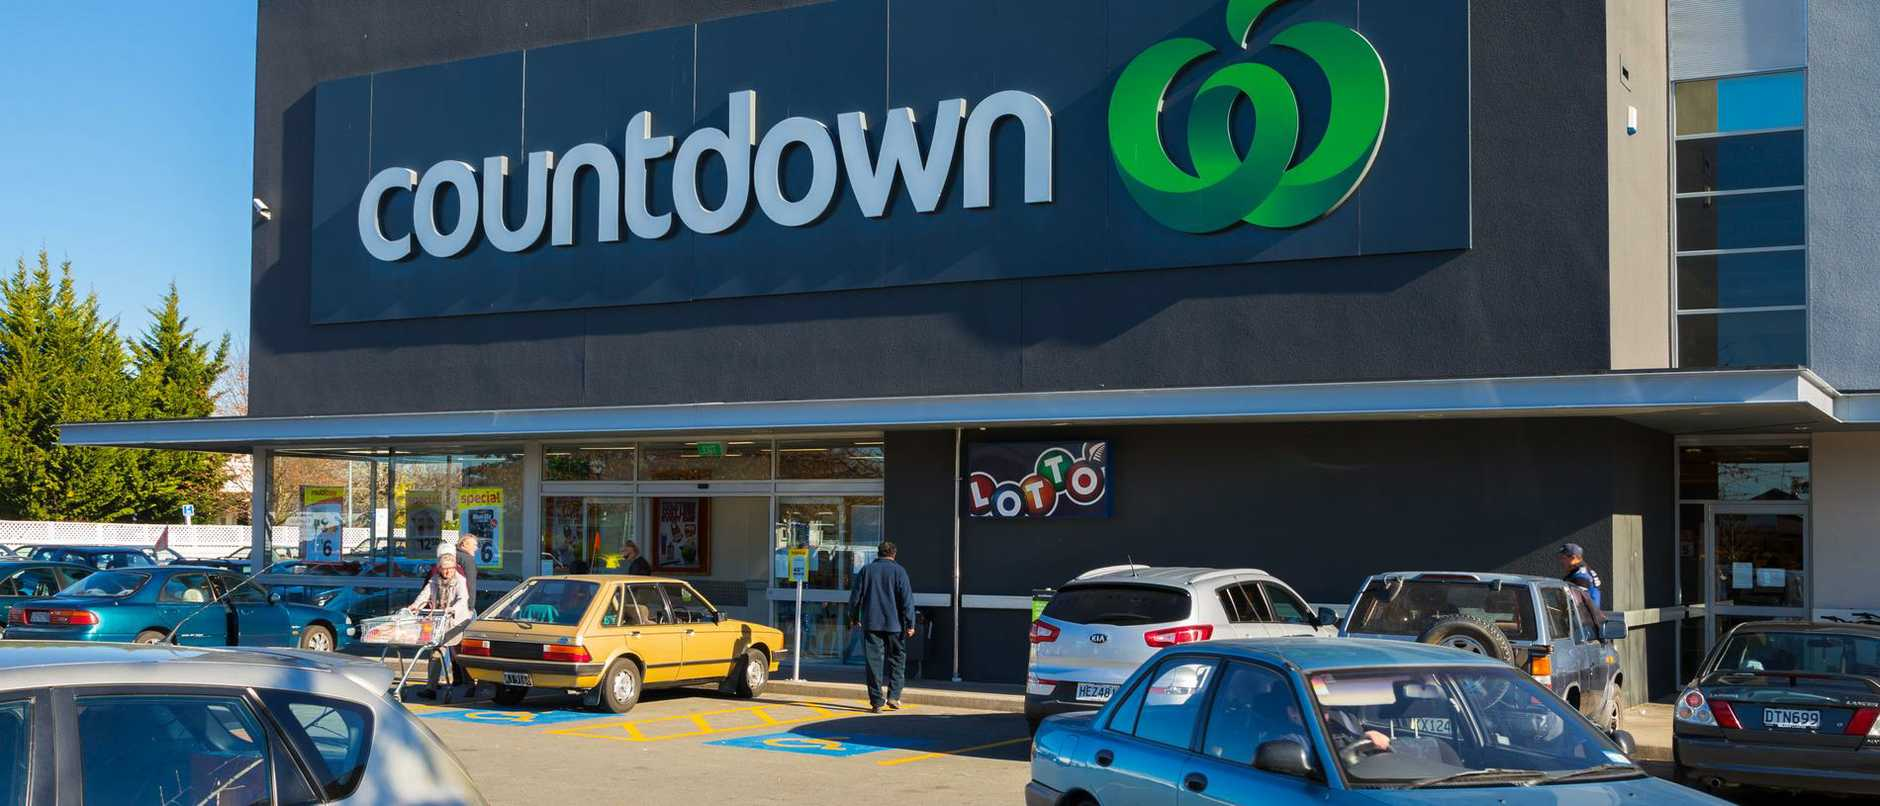 New Zealand Countdown deal was announced this morning on the NZ stock exchange